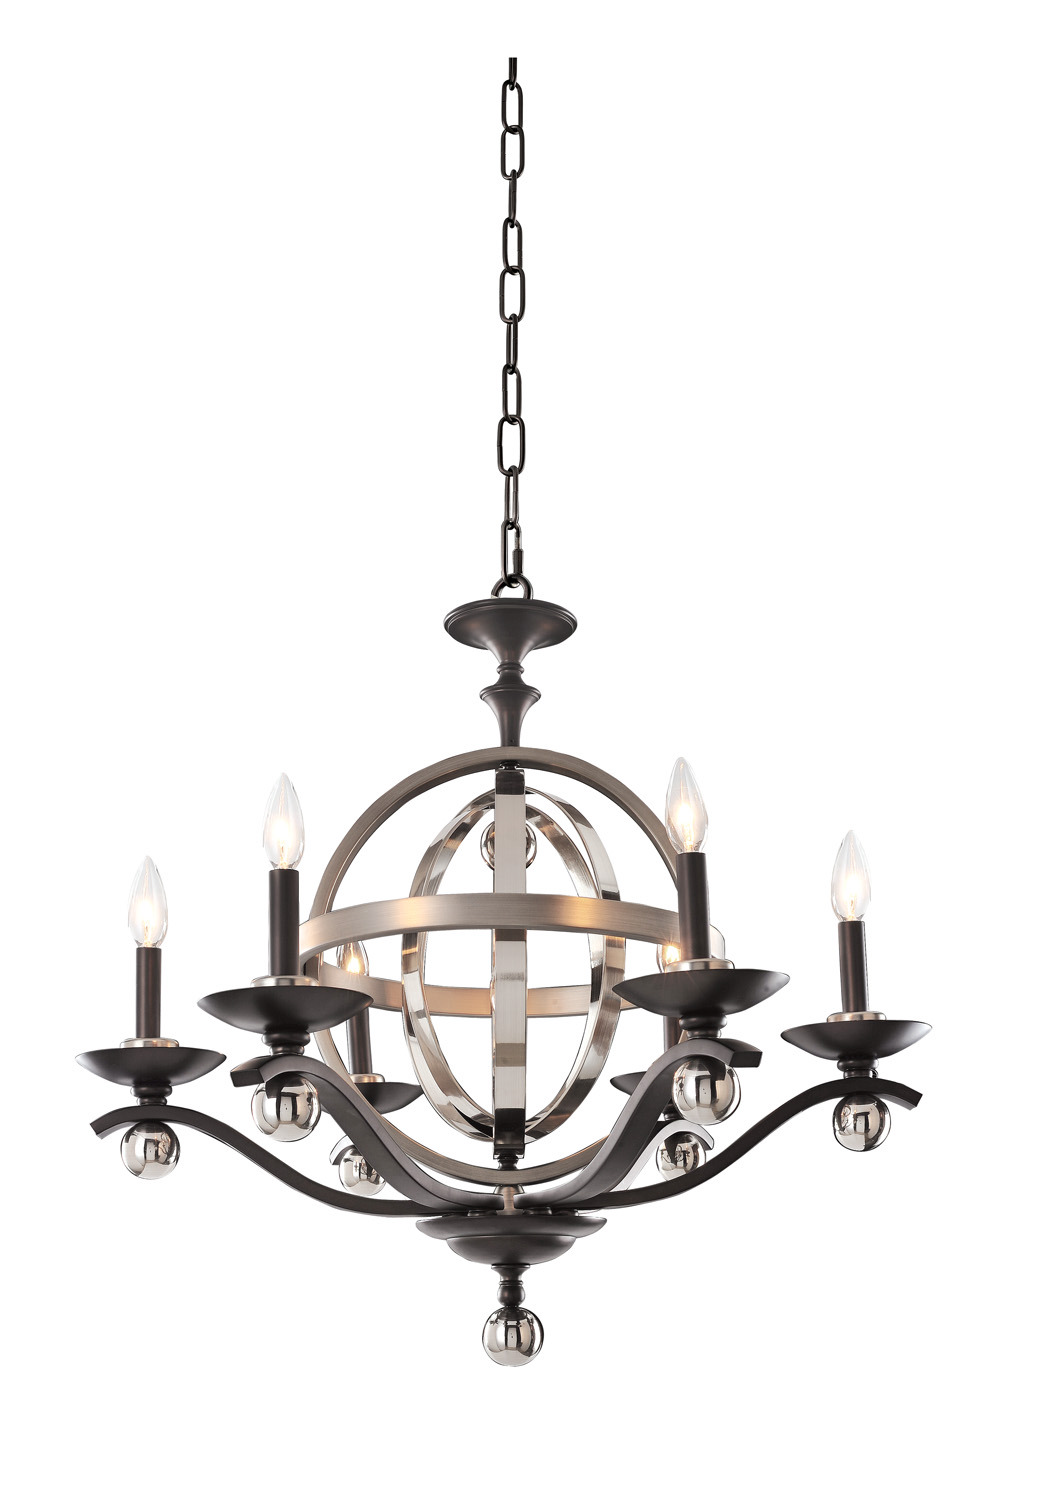 61 Light Chandelier From The Rothwell Collection By Kalco 6597